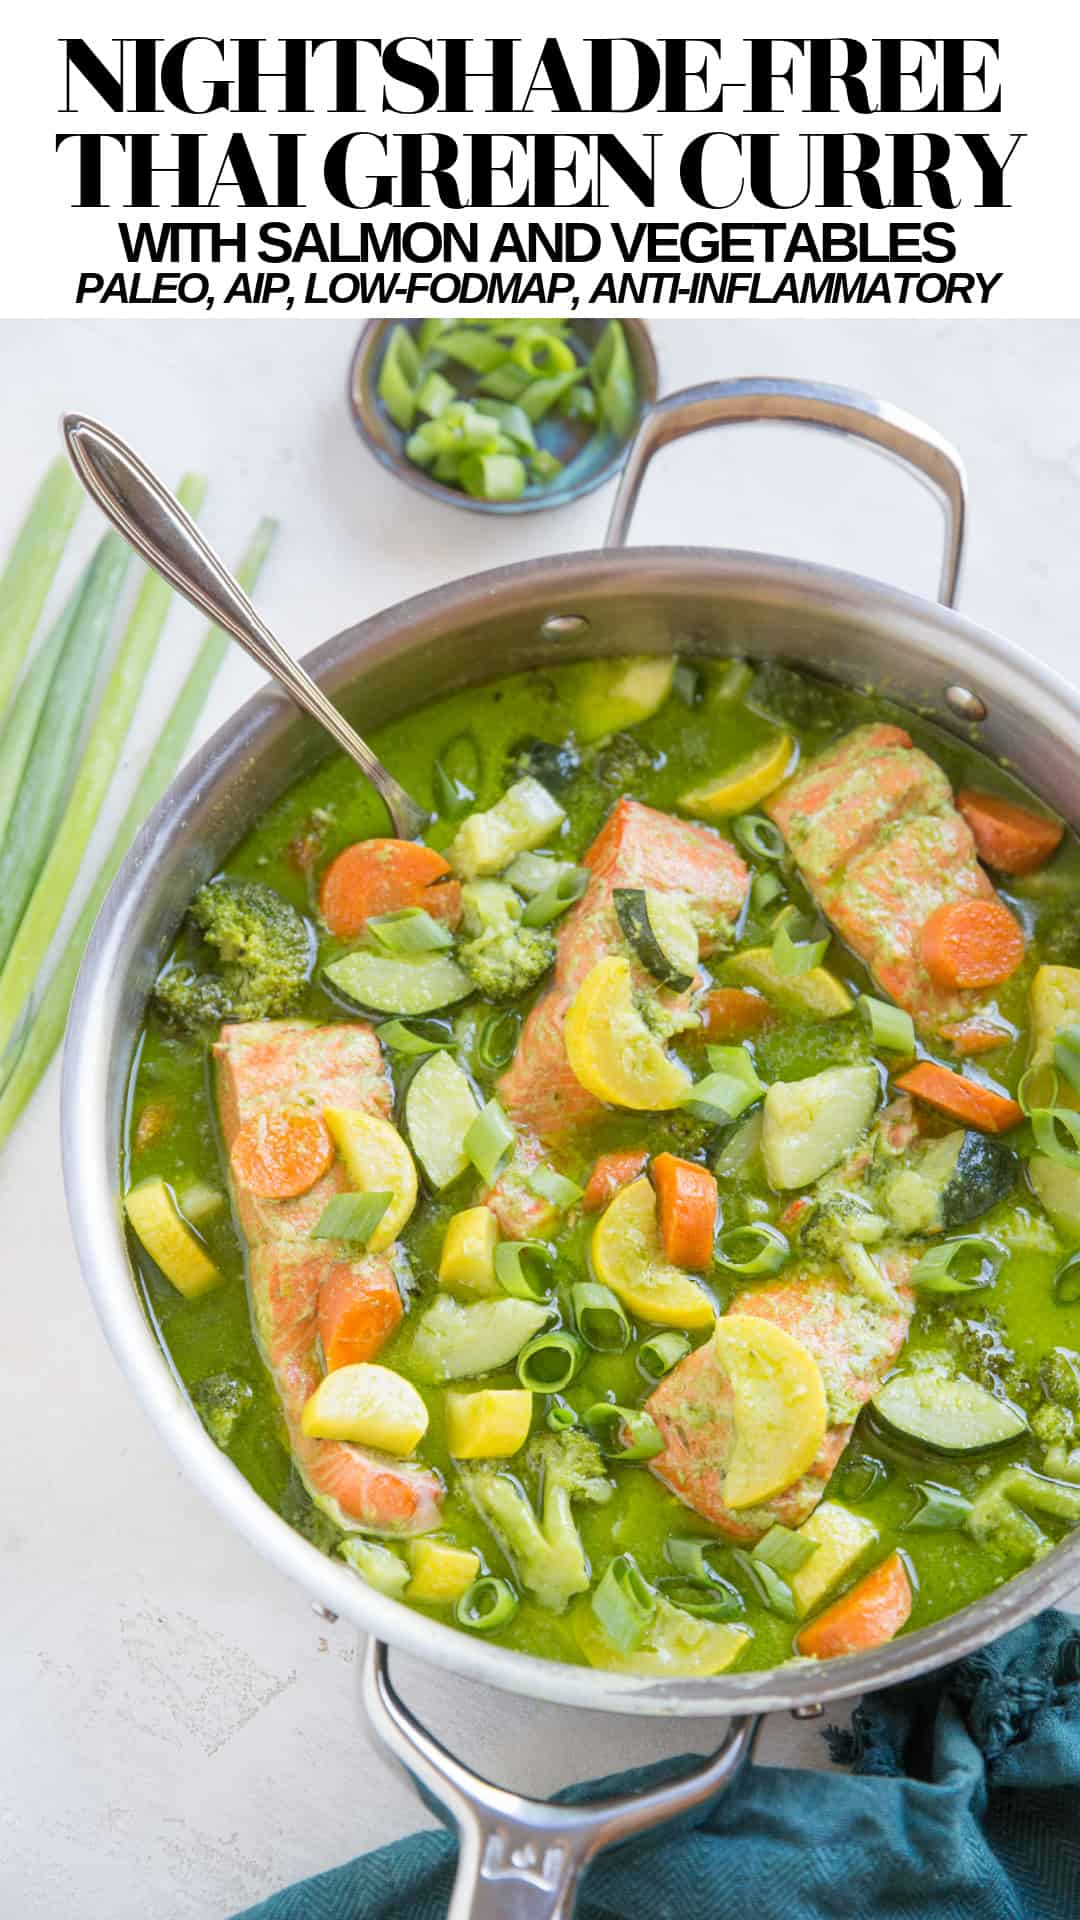 Nightshade-Free AIP Thai Green Curry - Low-FODMAP, keto, paleo, whole30 curry recipe that is anti-inflammatory and immunity boosting!